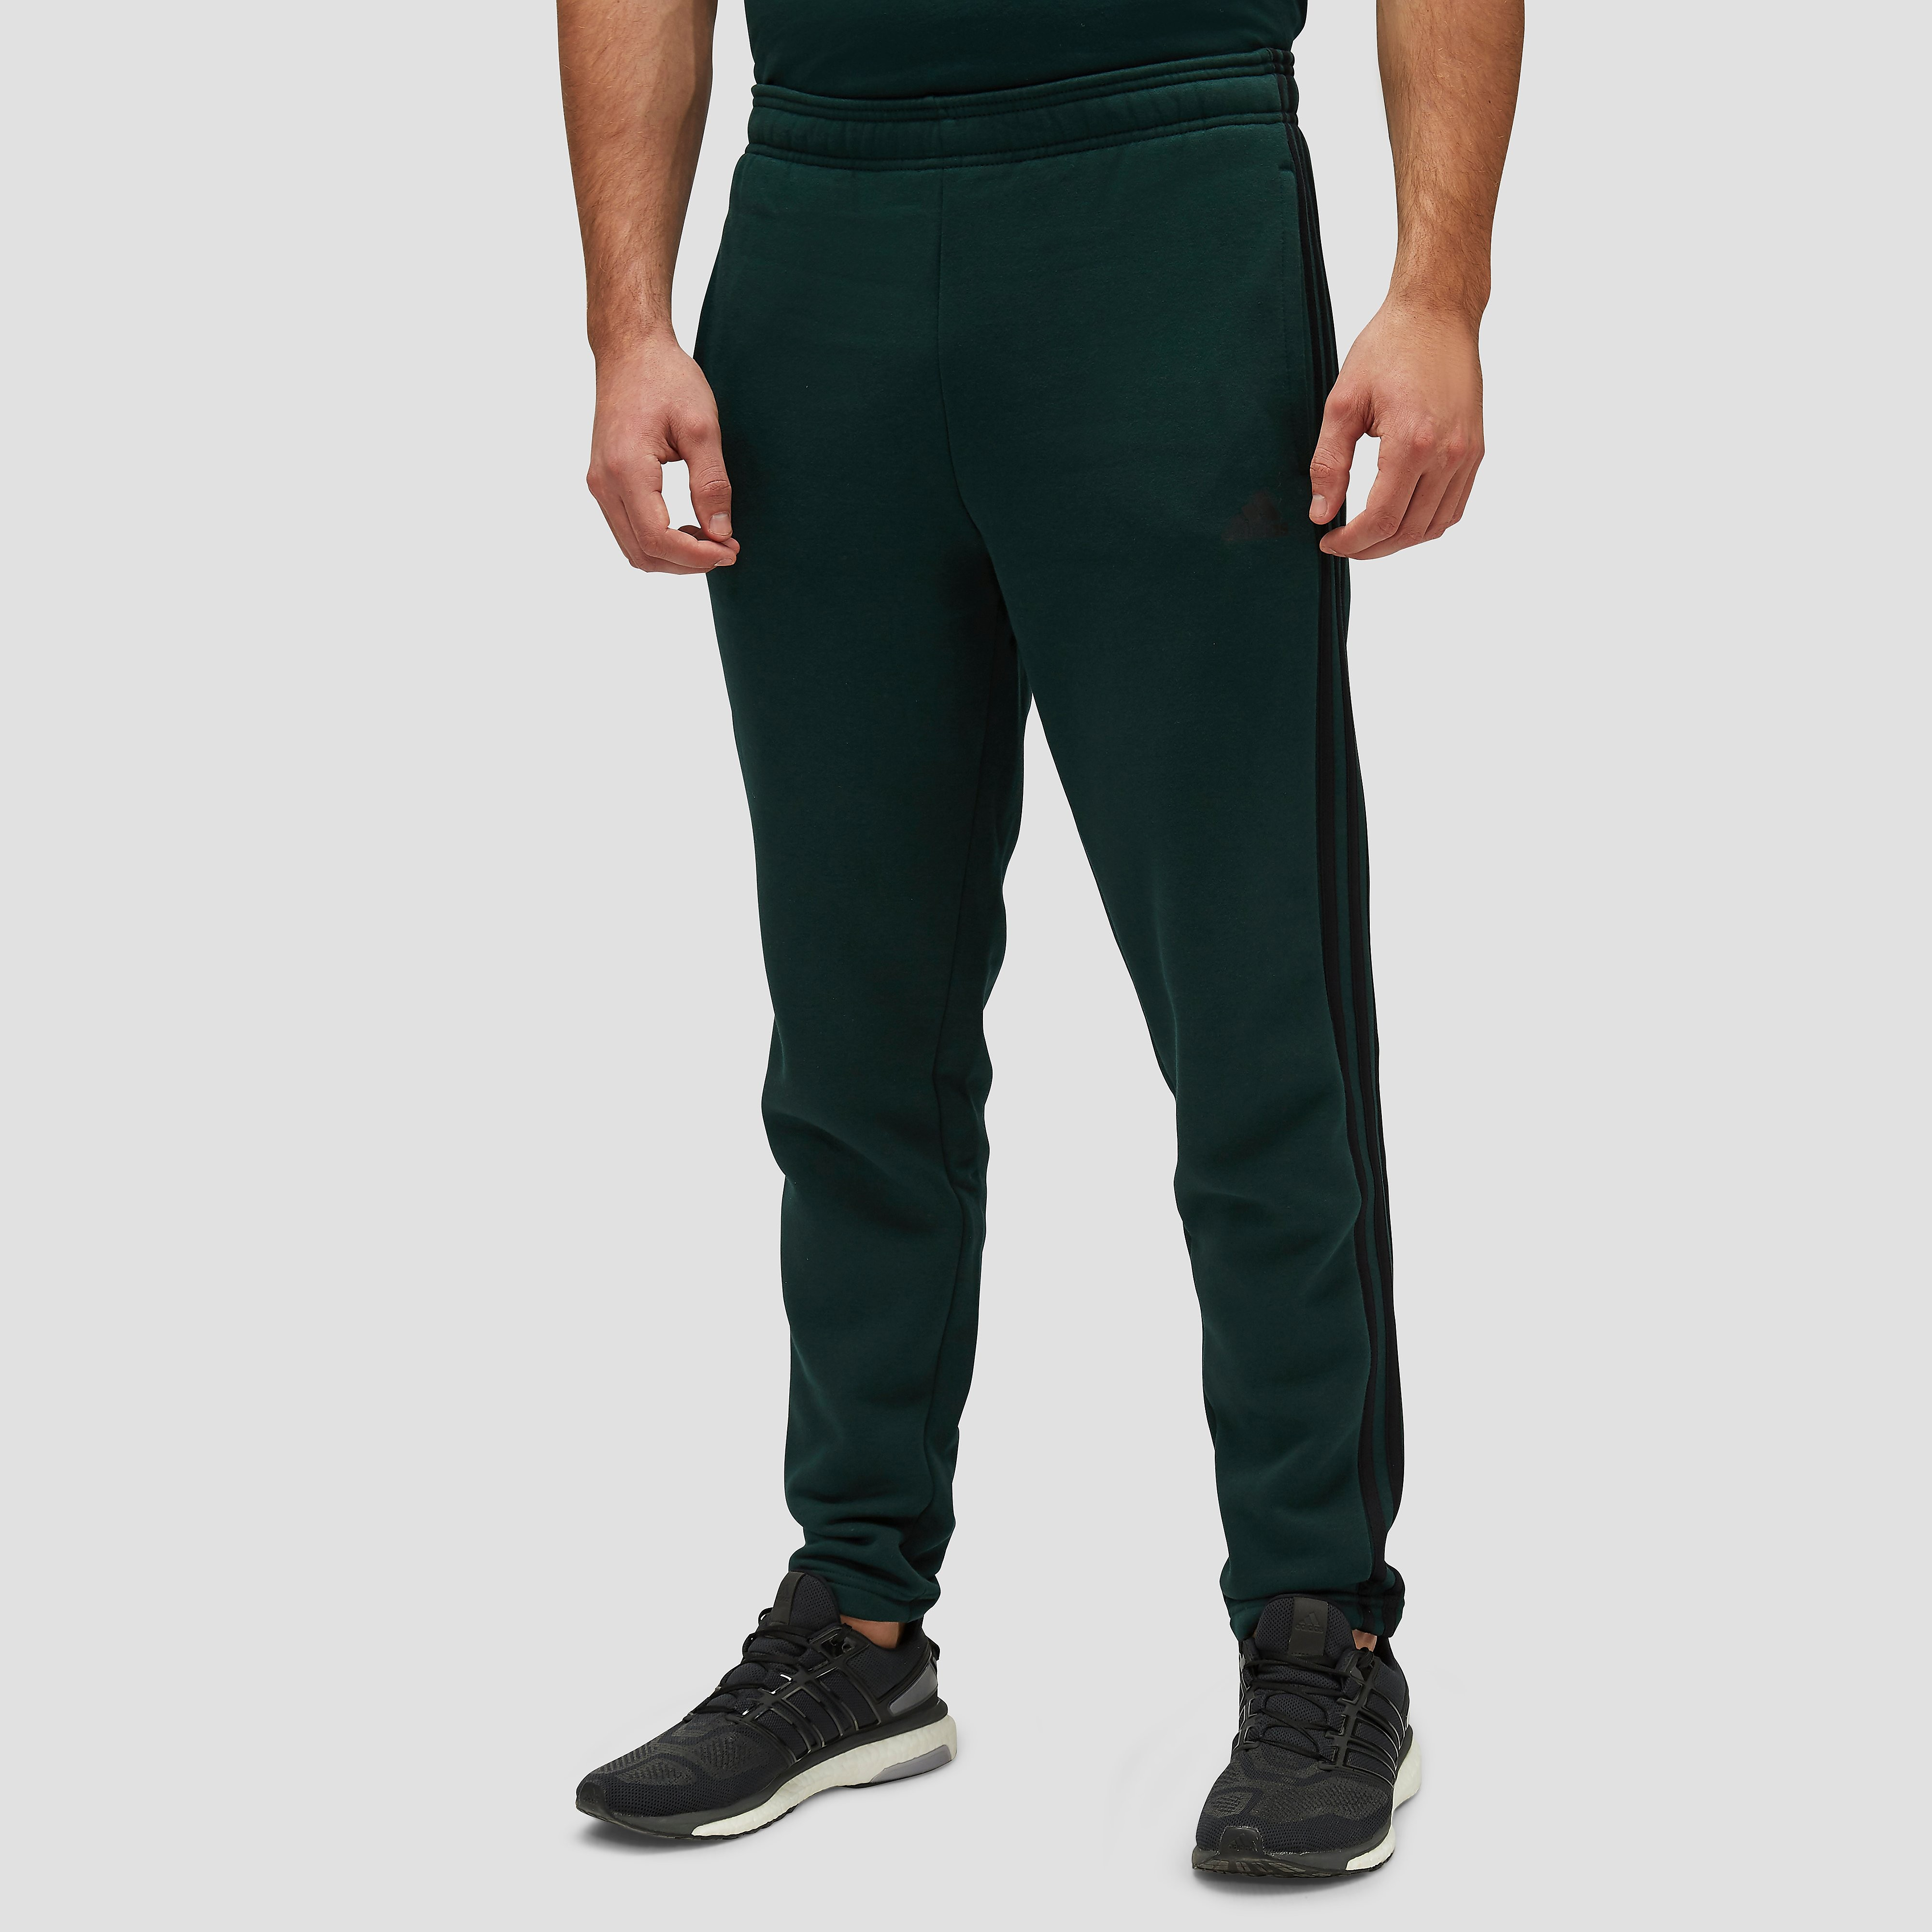 ADIDAS ESSENTIALS 3-STRIPES FLEECE JOGGINGBROEK GROEN HEREN